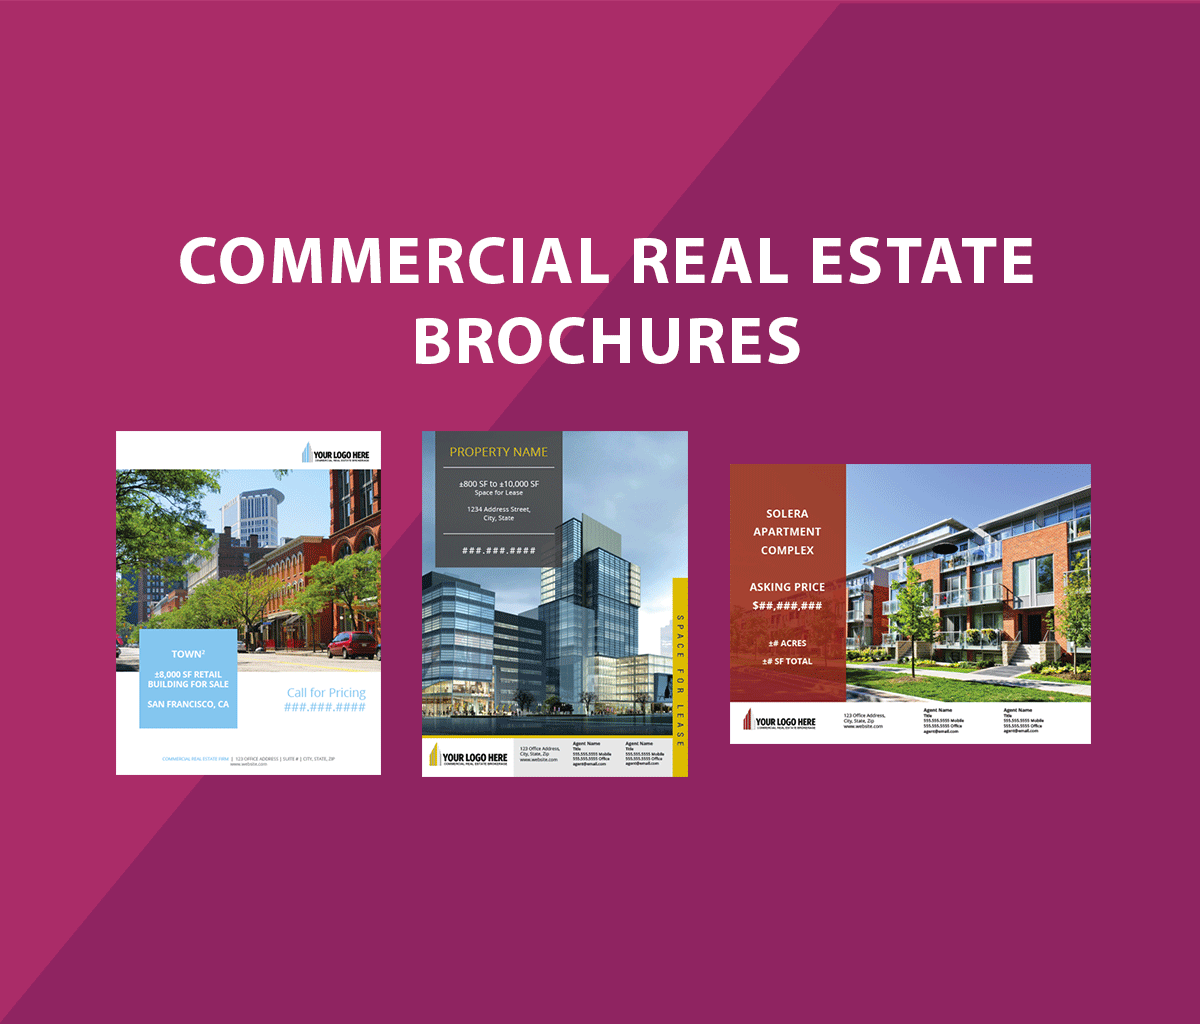 commercial real estate brochure flyer design designs that sell